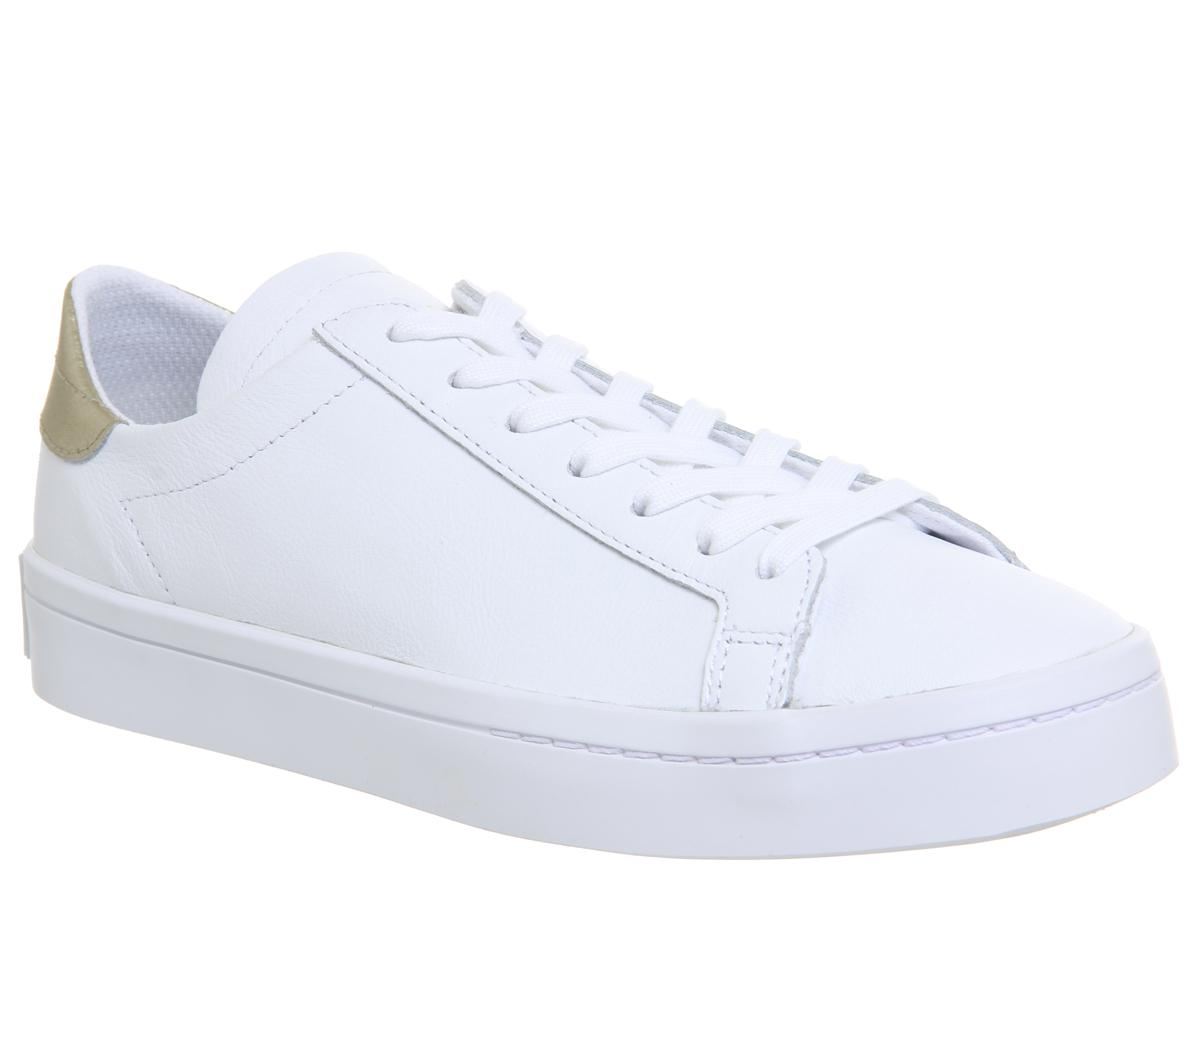 Bangladesh El cielo Forzado  adidas Court Vantage Trainers White Cyber Metallic White Exclusive - Hers  trainers